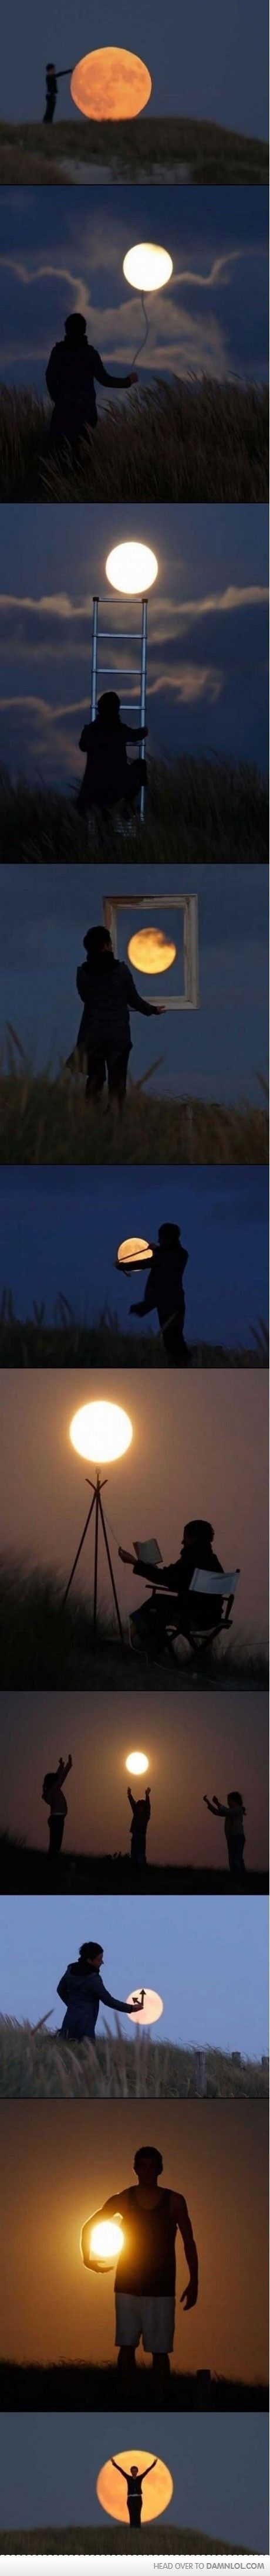 .Photos Ideas, Awesome, Moon, Super Moon, Beautiful, Moon Art, Photography, Moon Pictures, The Moon